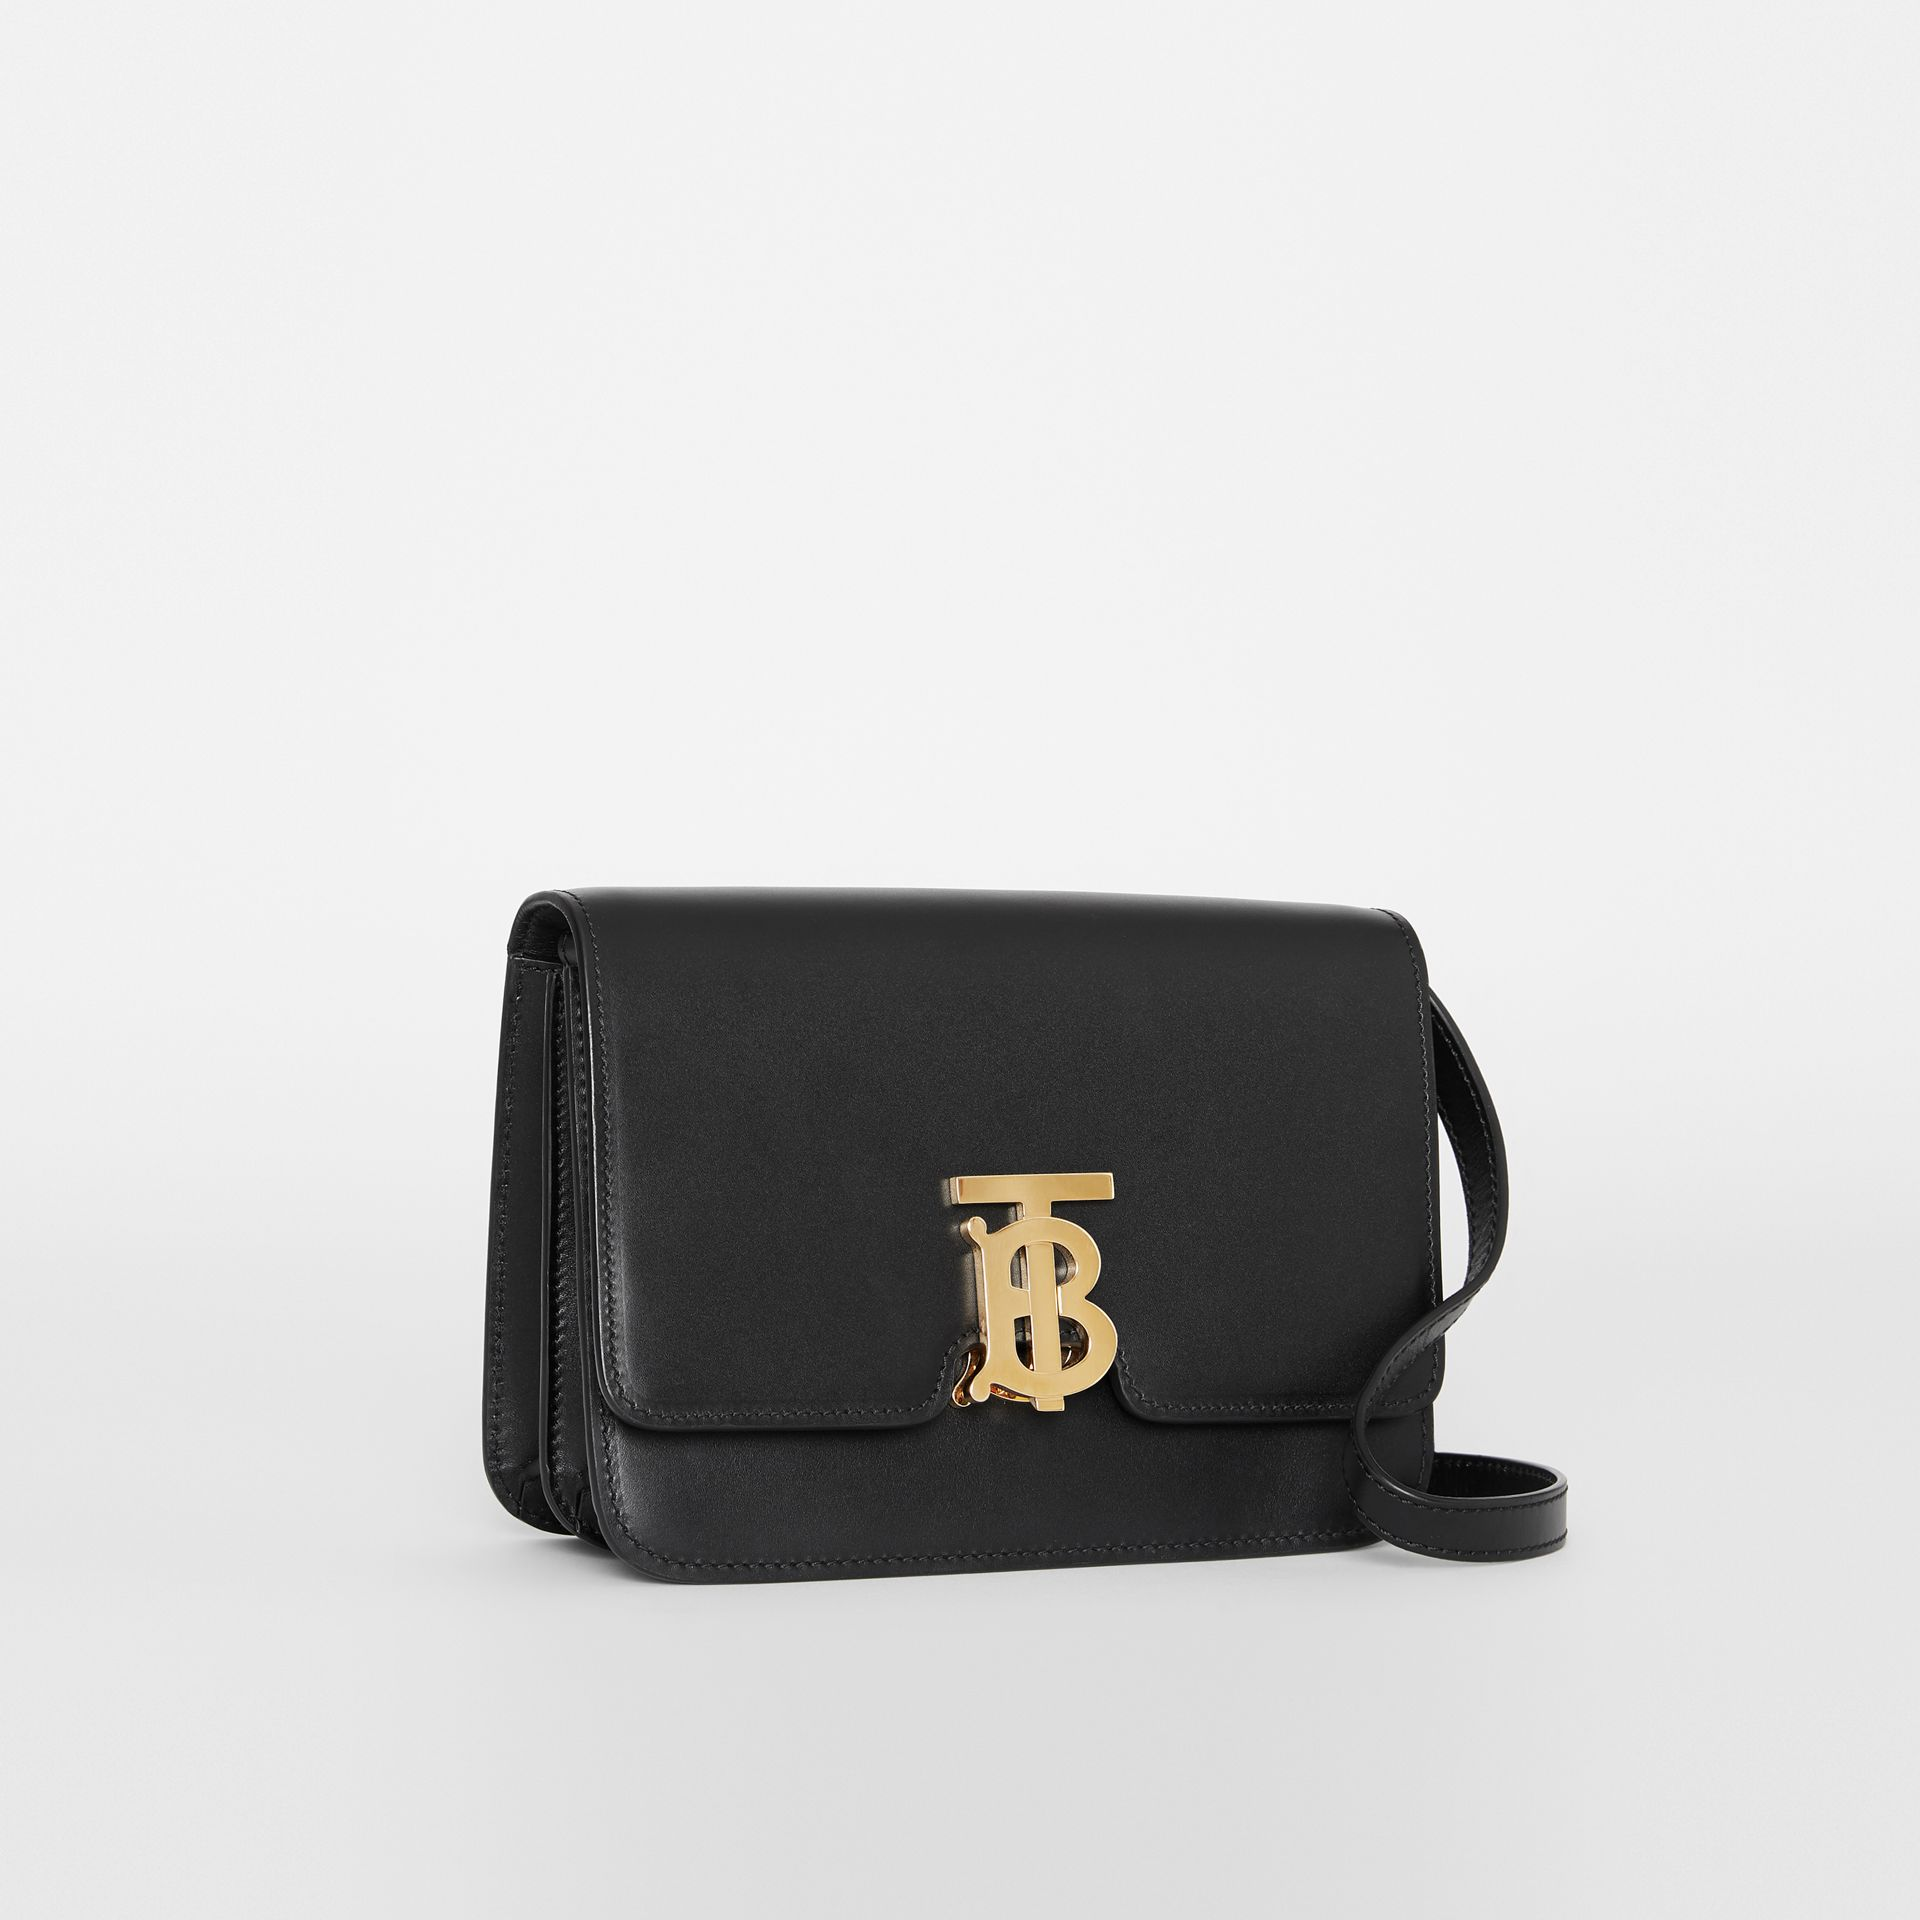 Small Leather TB Bag in Black - Women | Burberry Australia - gallery image 8